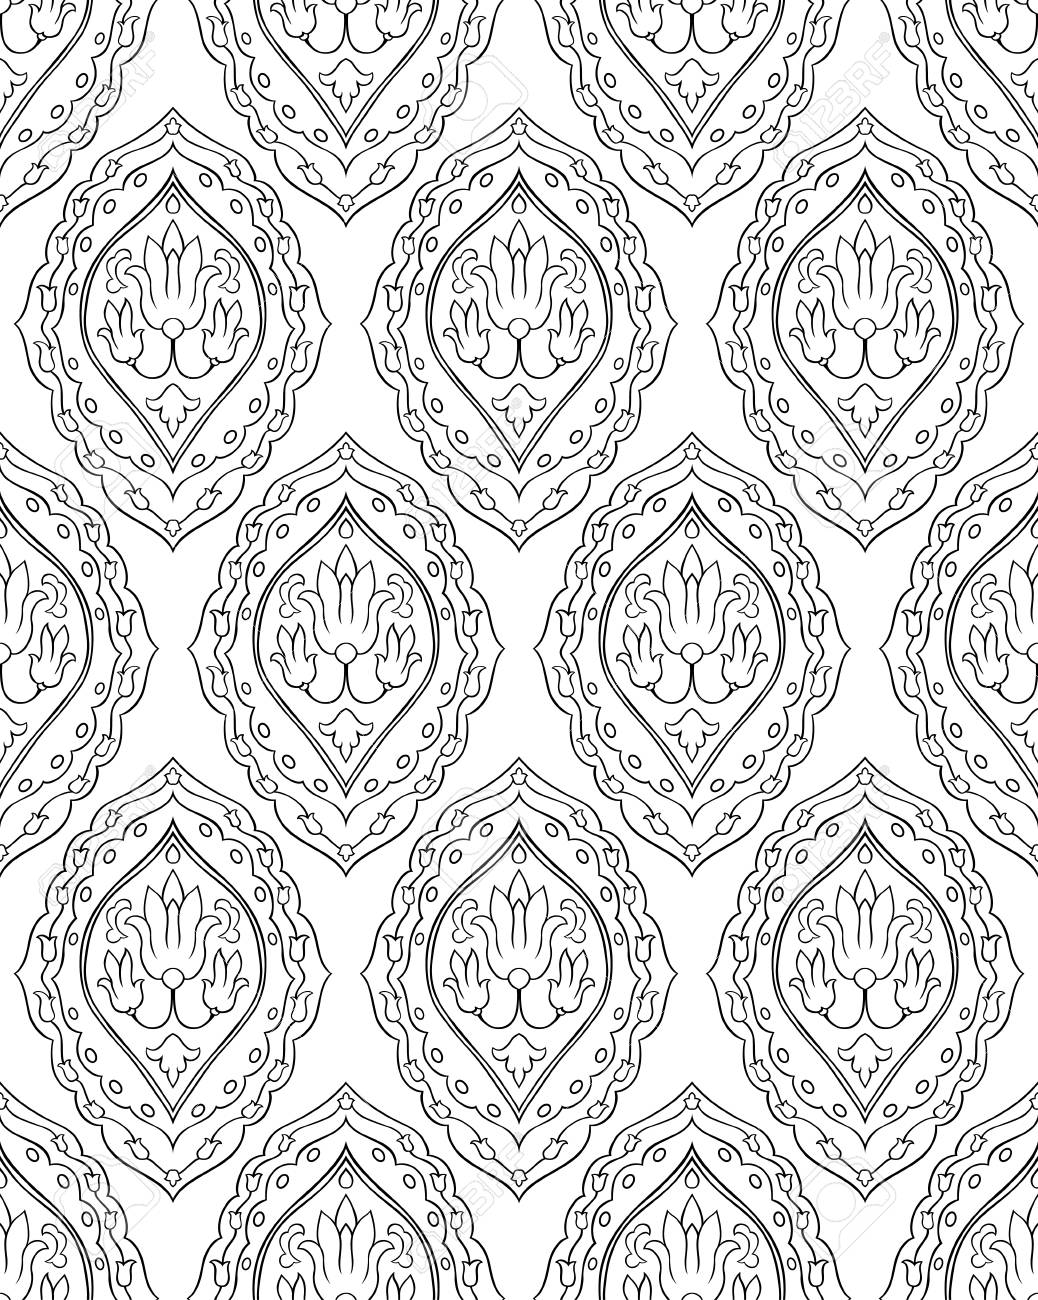 Abstract Vector Ornament Simple Template For Carpet Wallpaper Royalty Free Cliparts Vectors And Stock Illustration Image 79934800